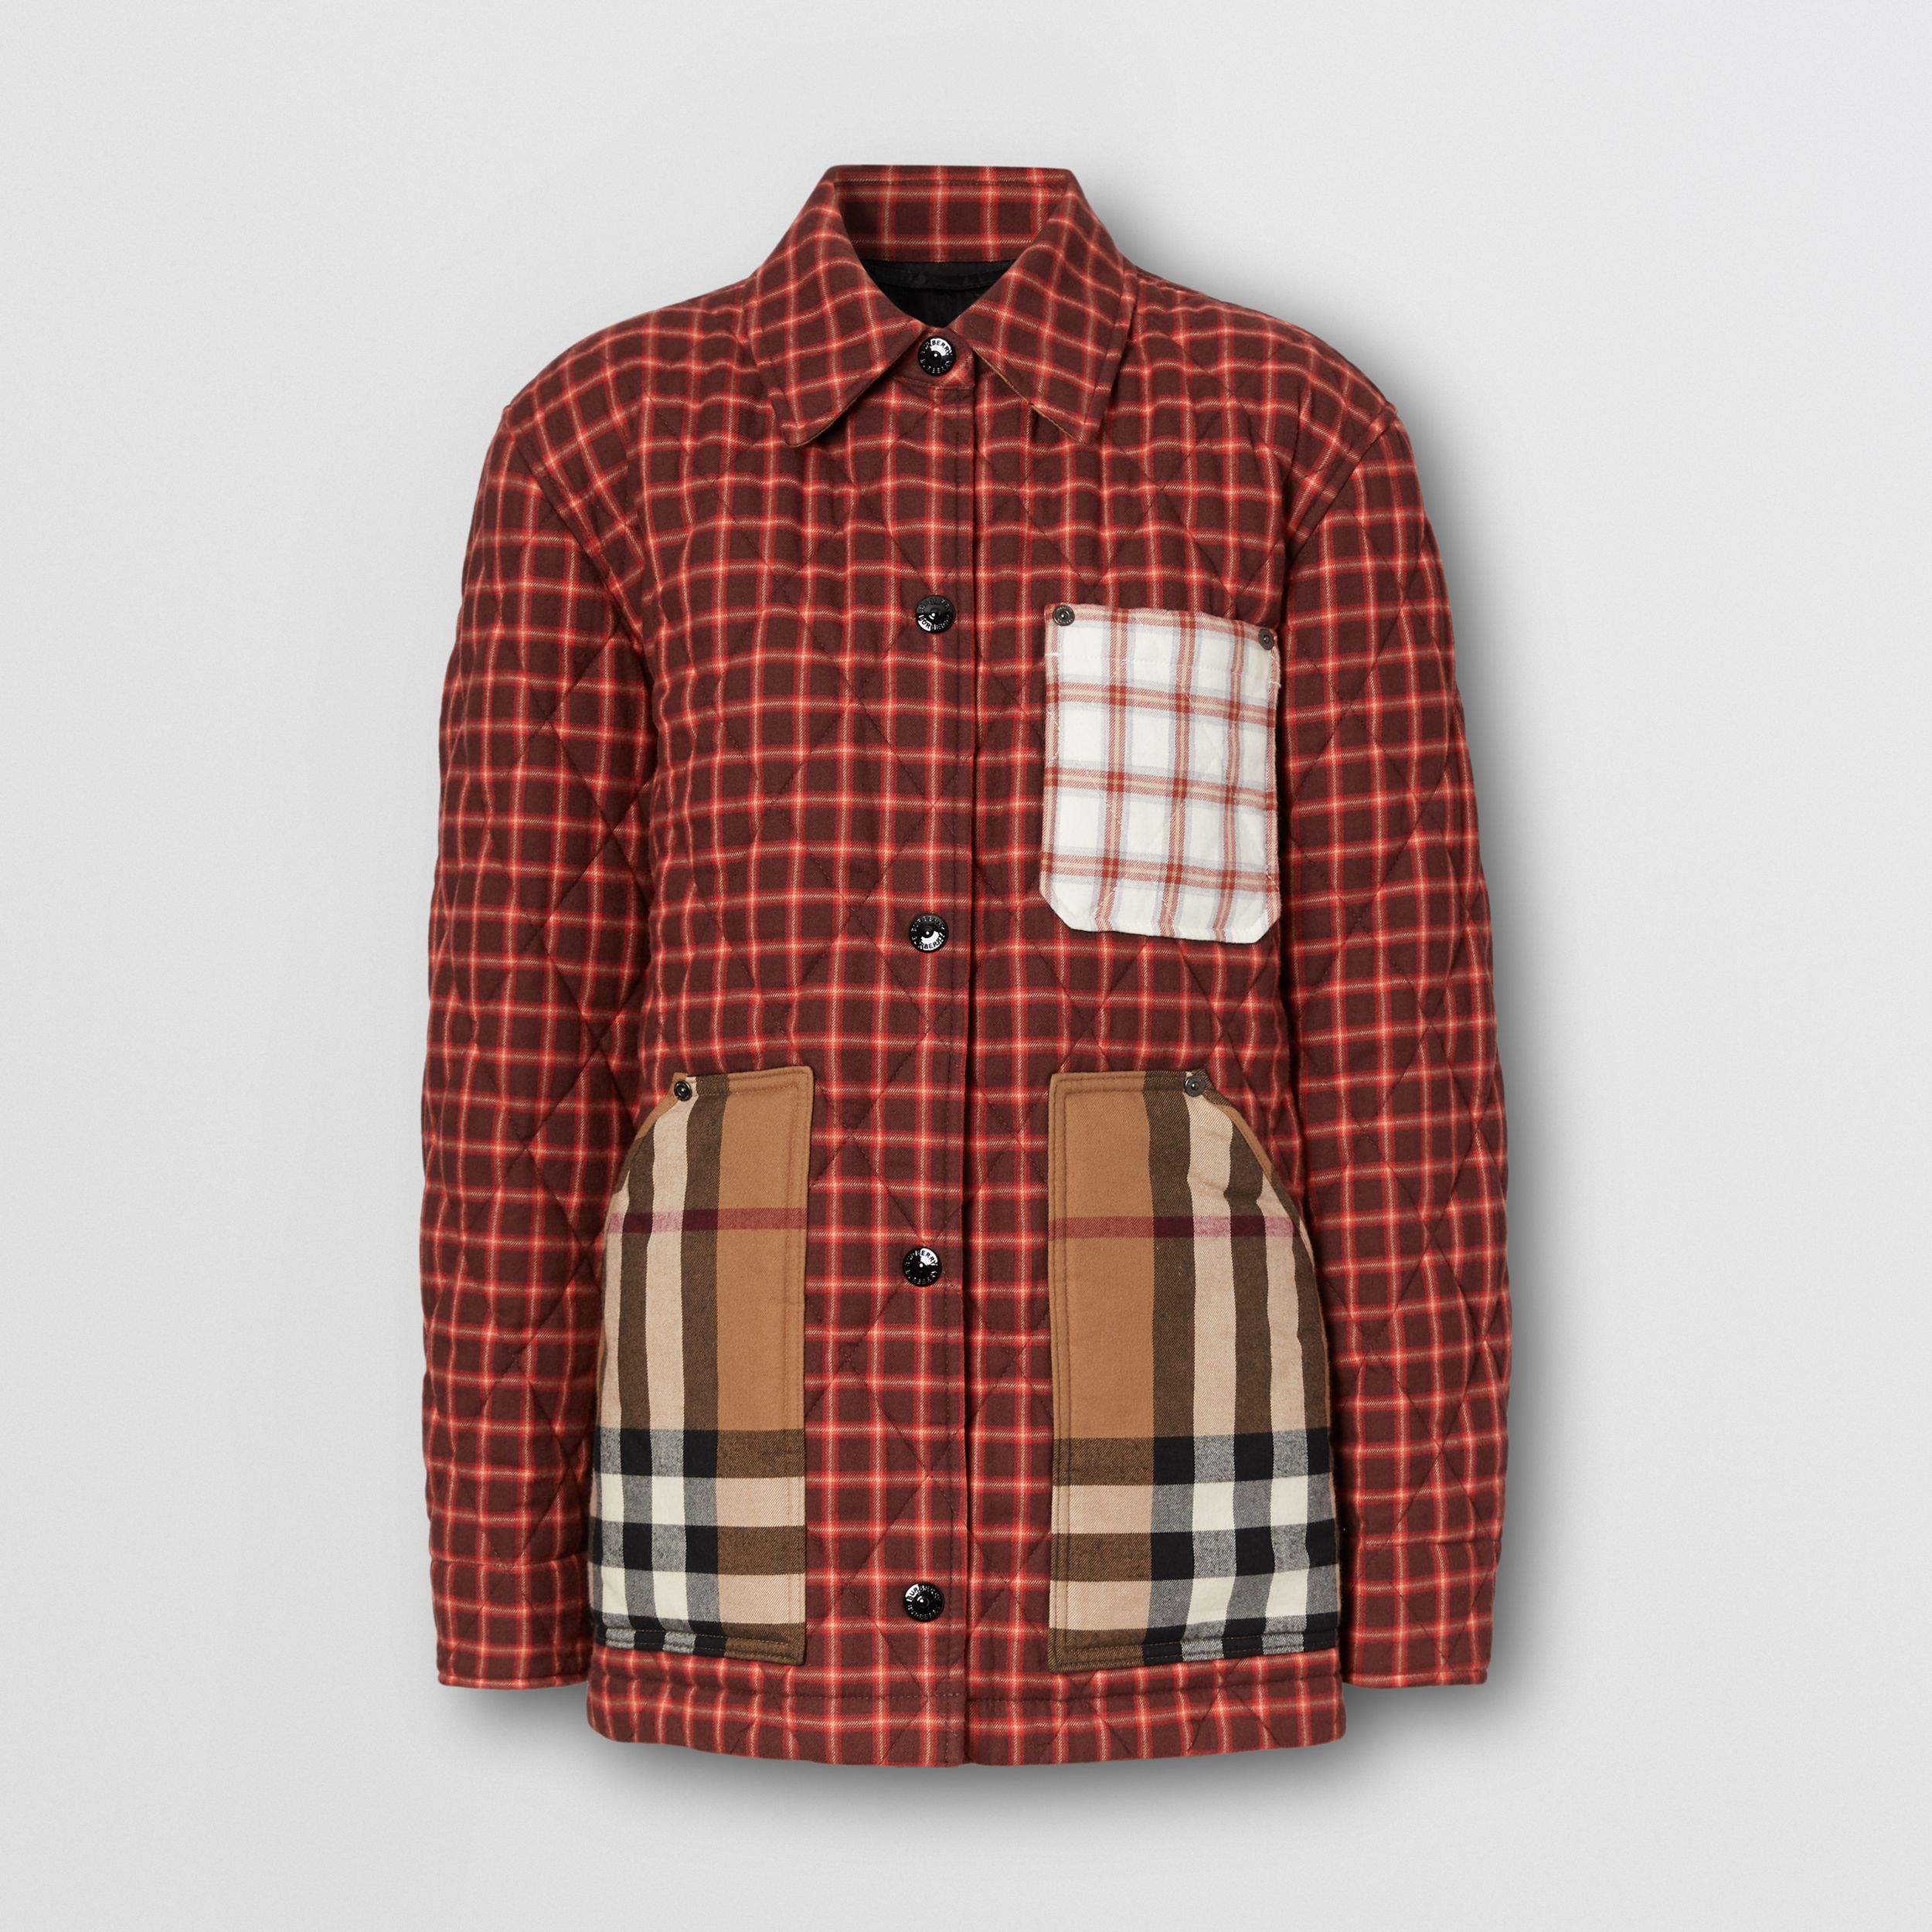 Contrast Pocket Check Cotton Flannel Overshirt in Burgundy - Women | Burberry - 4